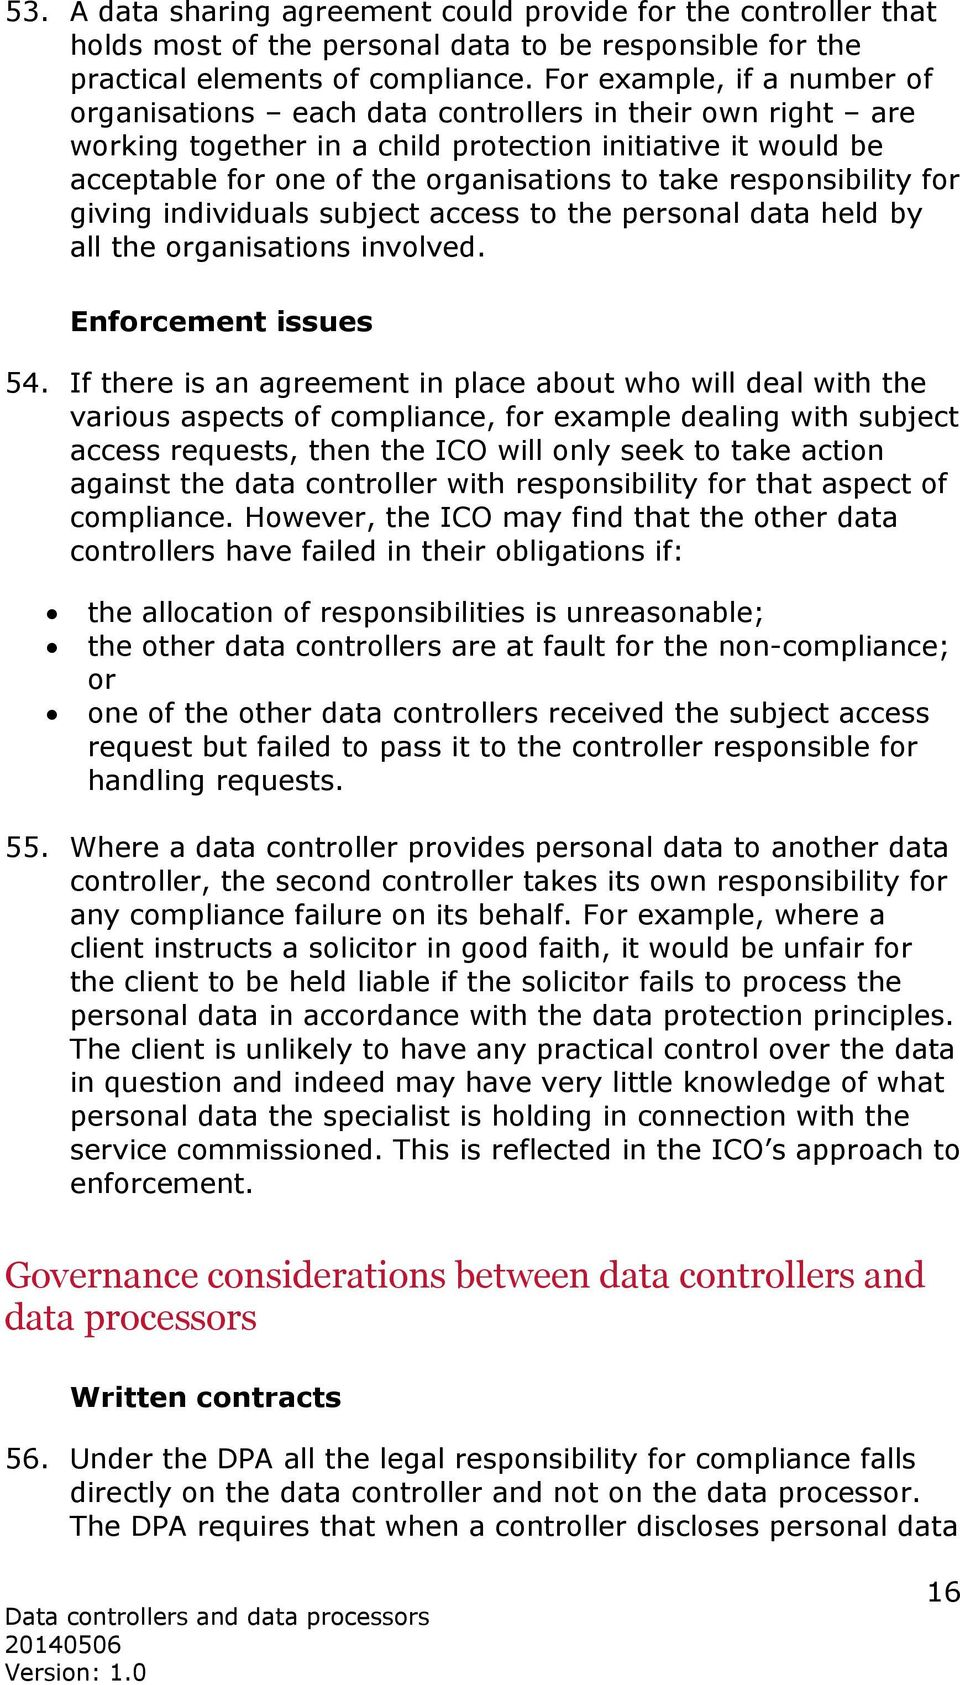 responsibility for giving individuals subject access to the personal data held by all the organisations involved. Enforcement issues 54.